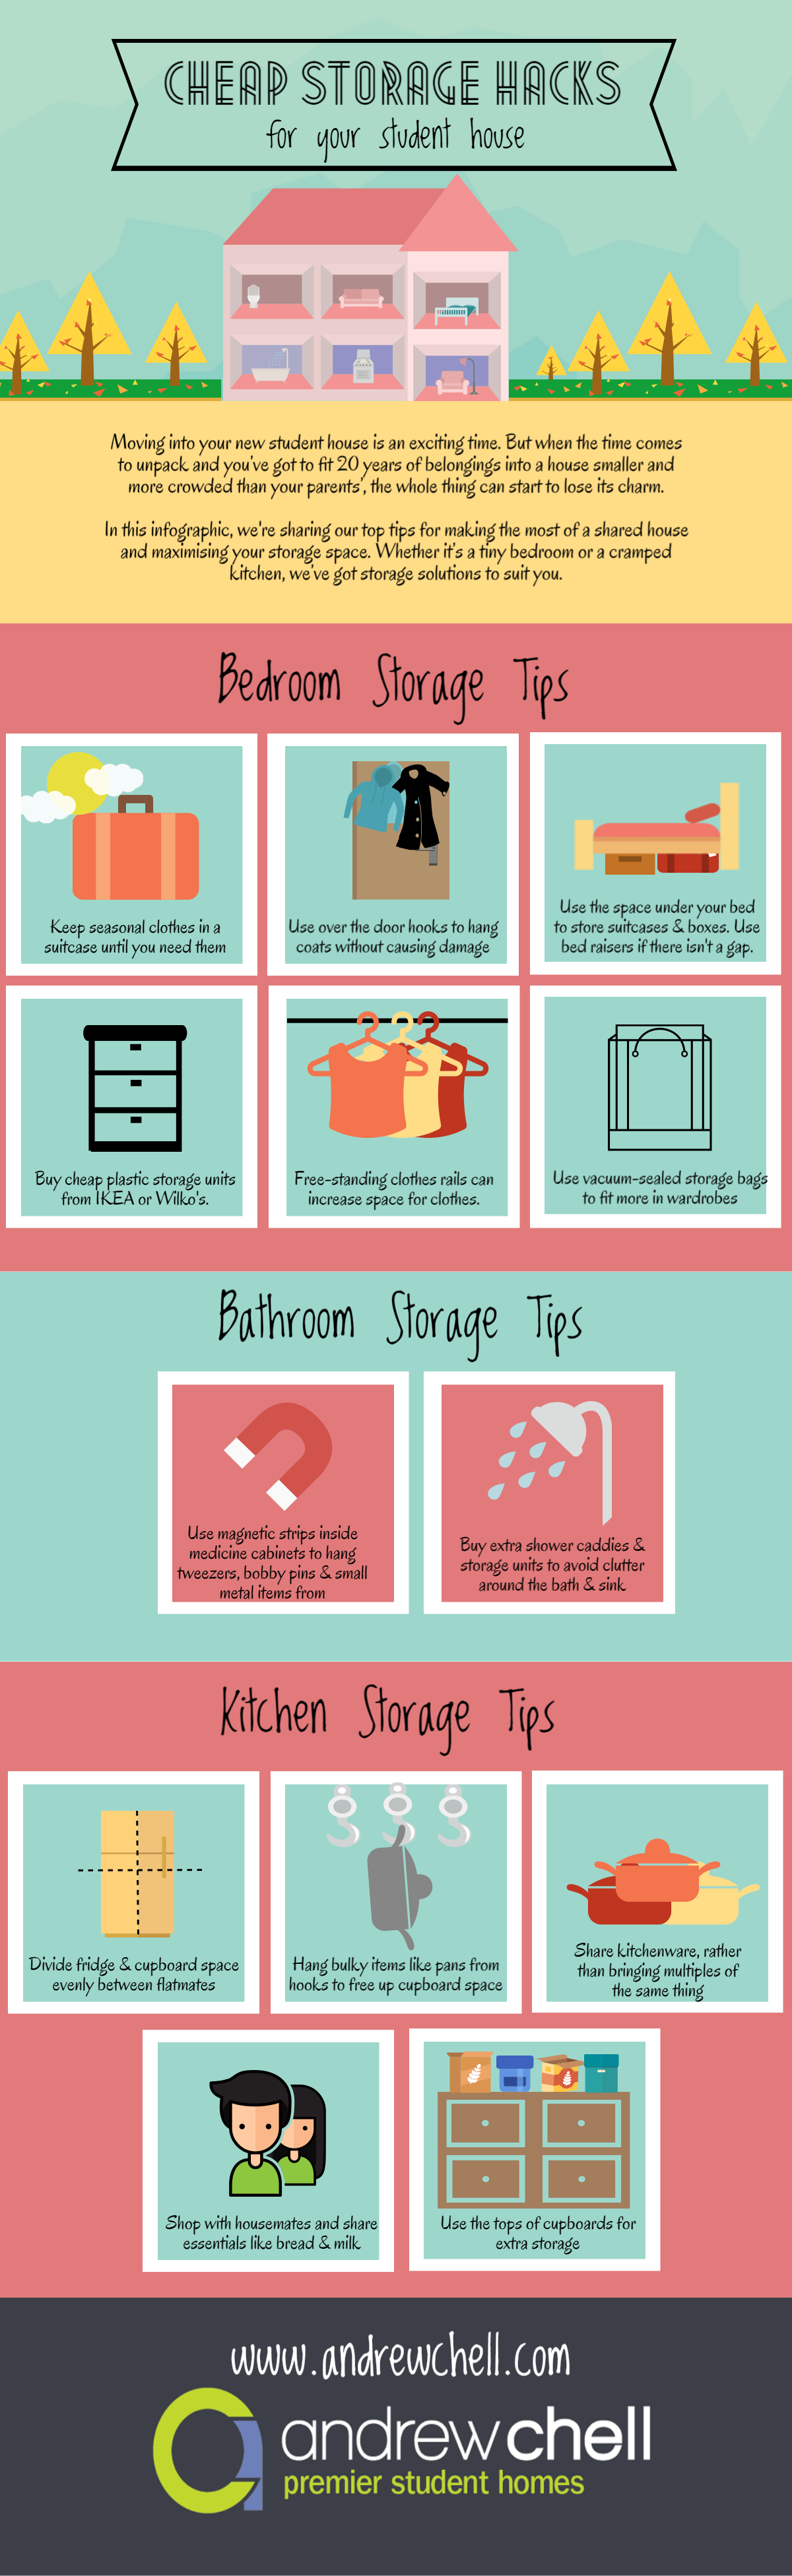 Cheap storage hacks